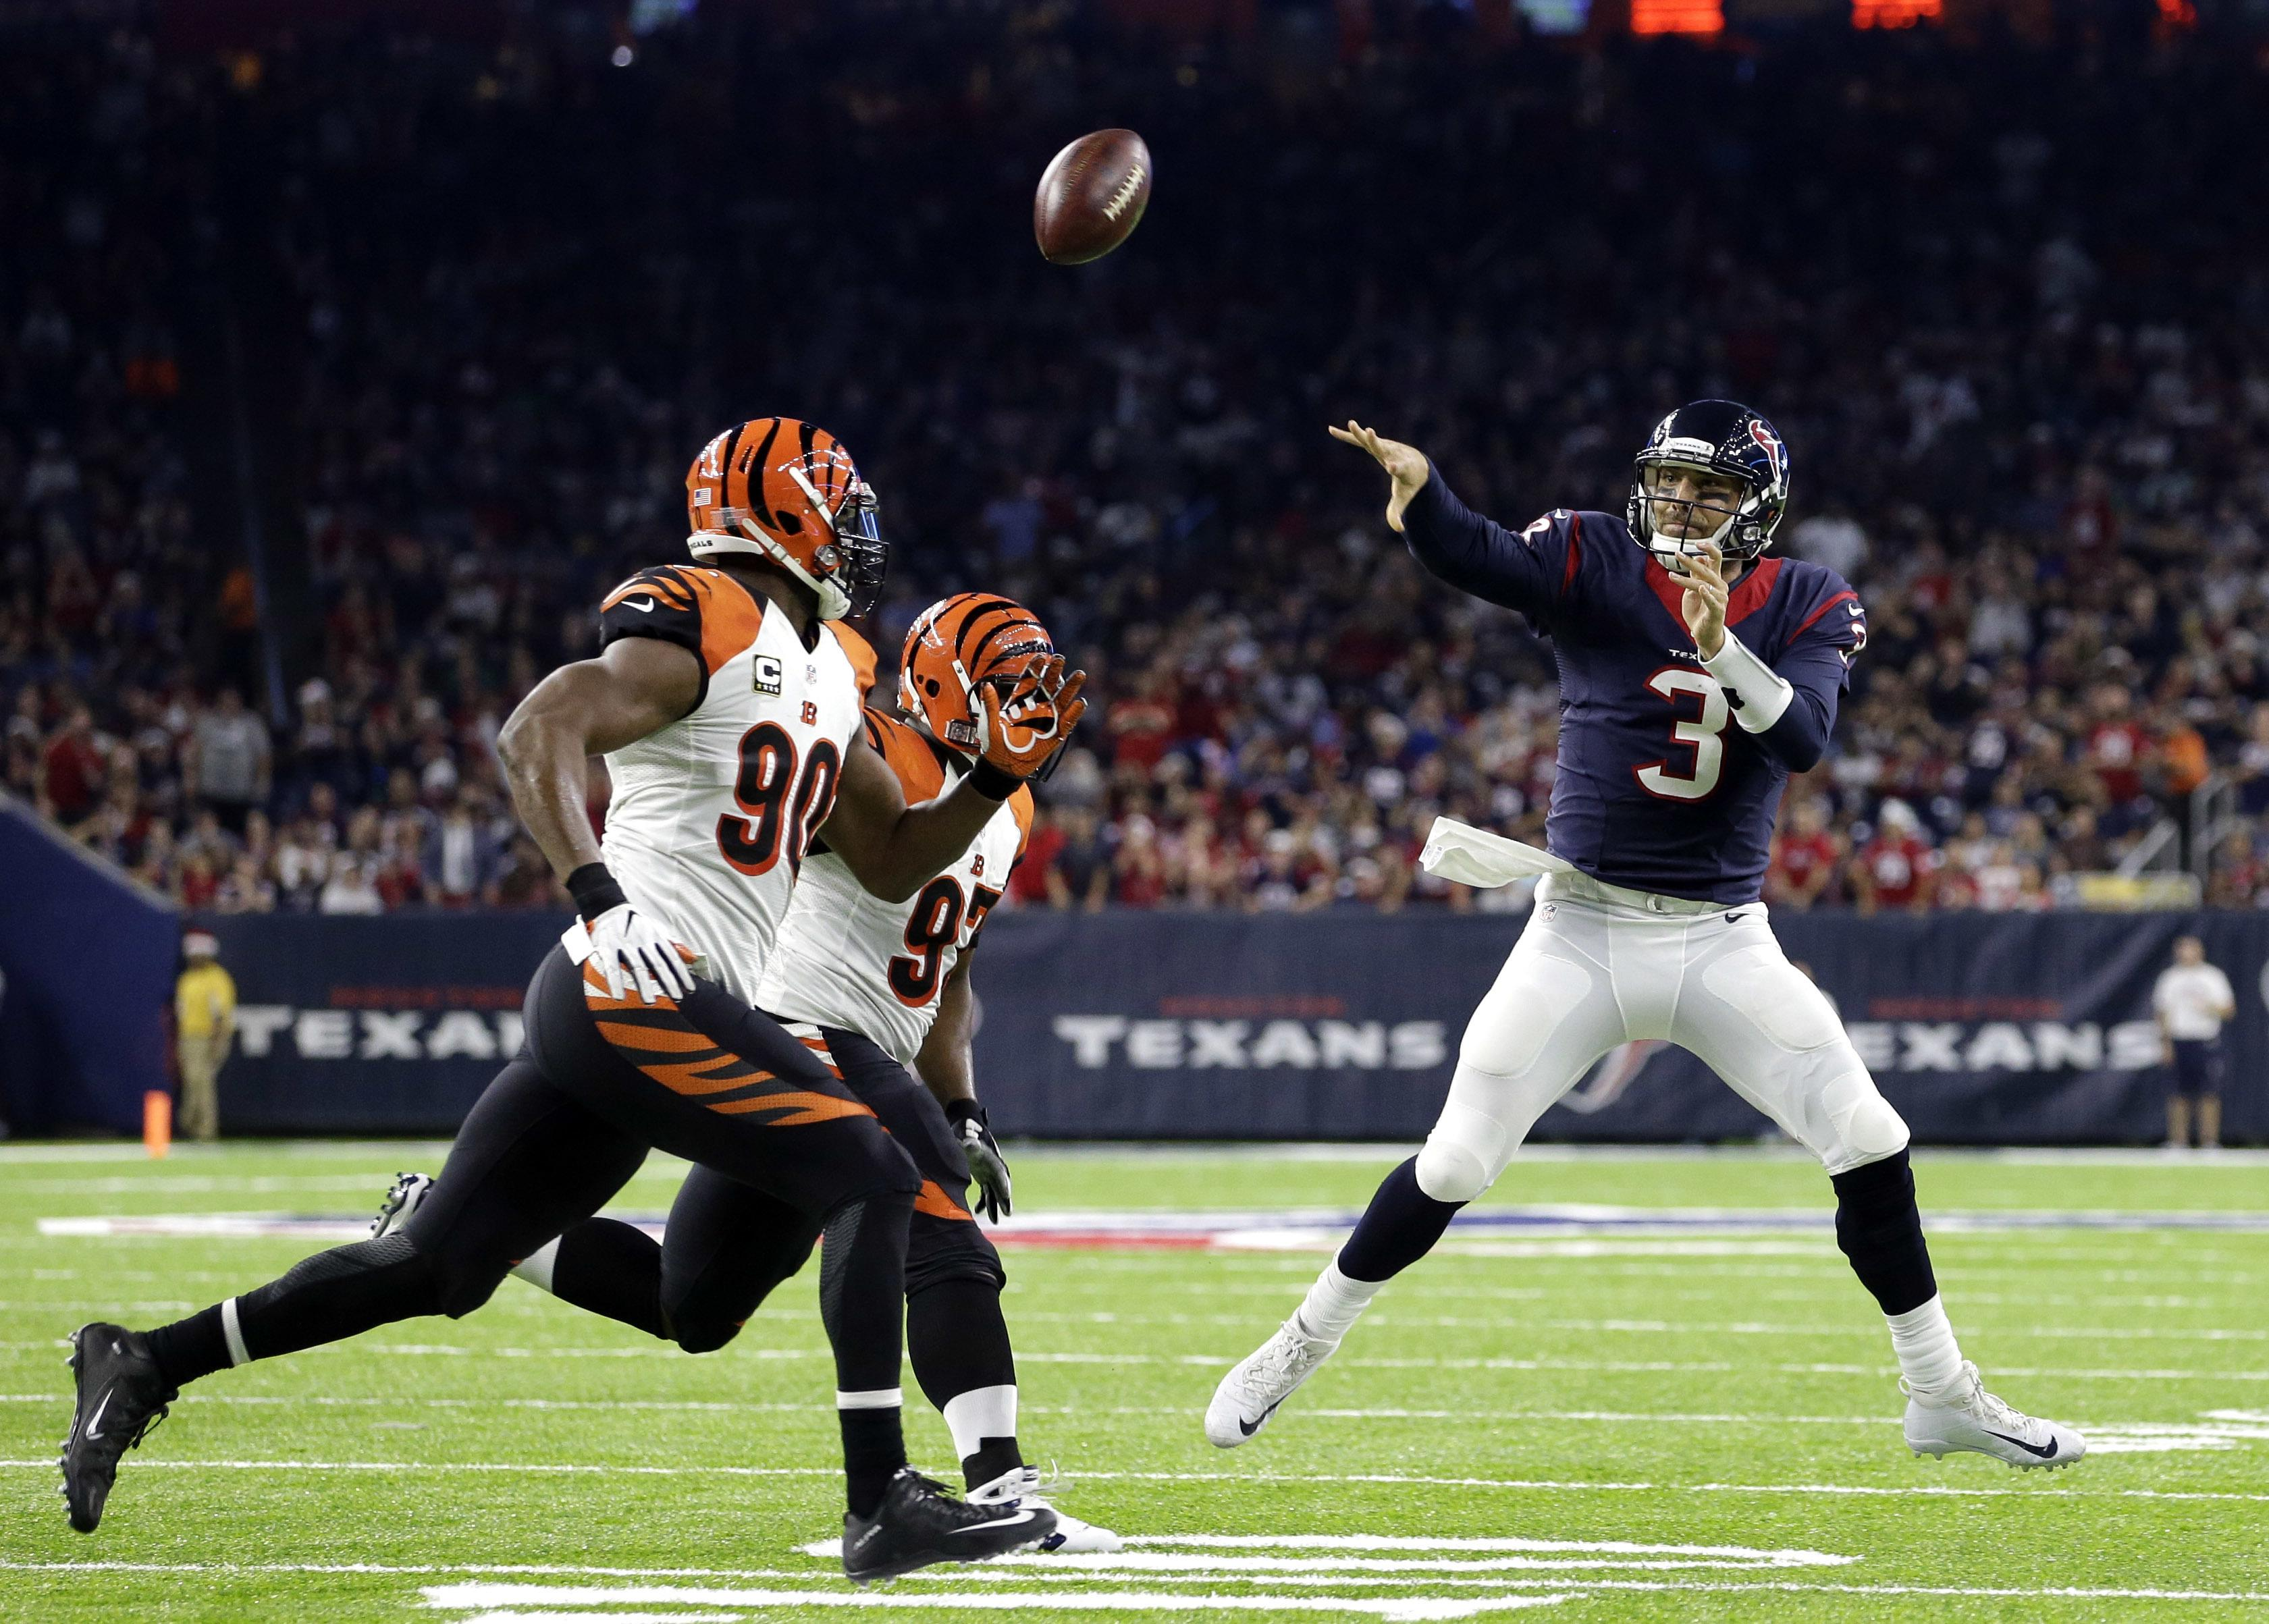 Bengals_texans_football_14704